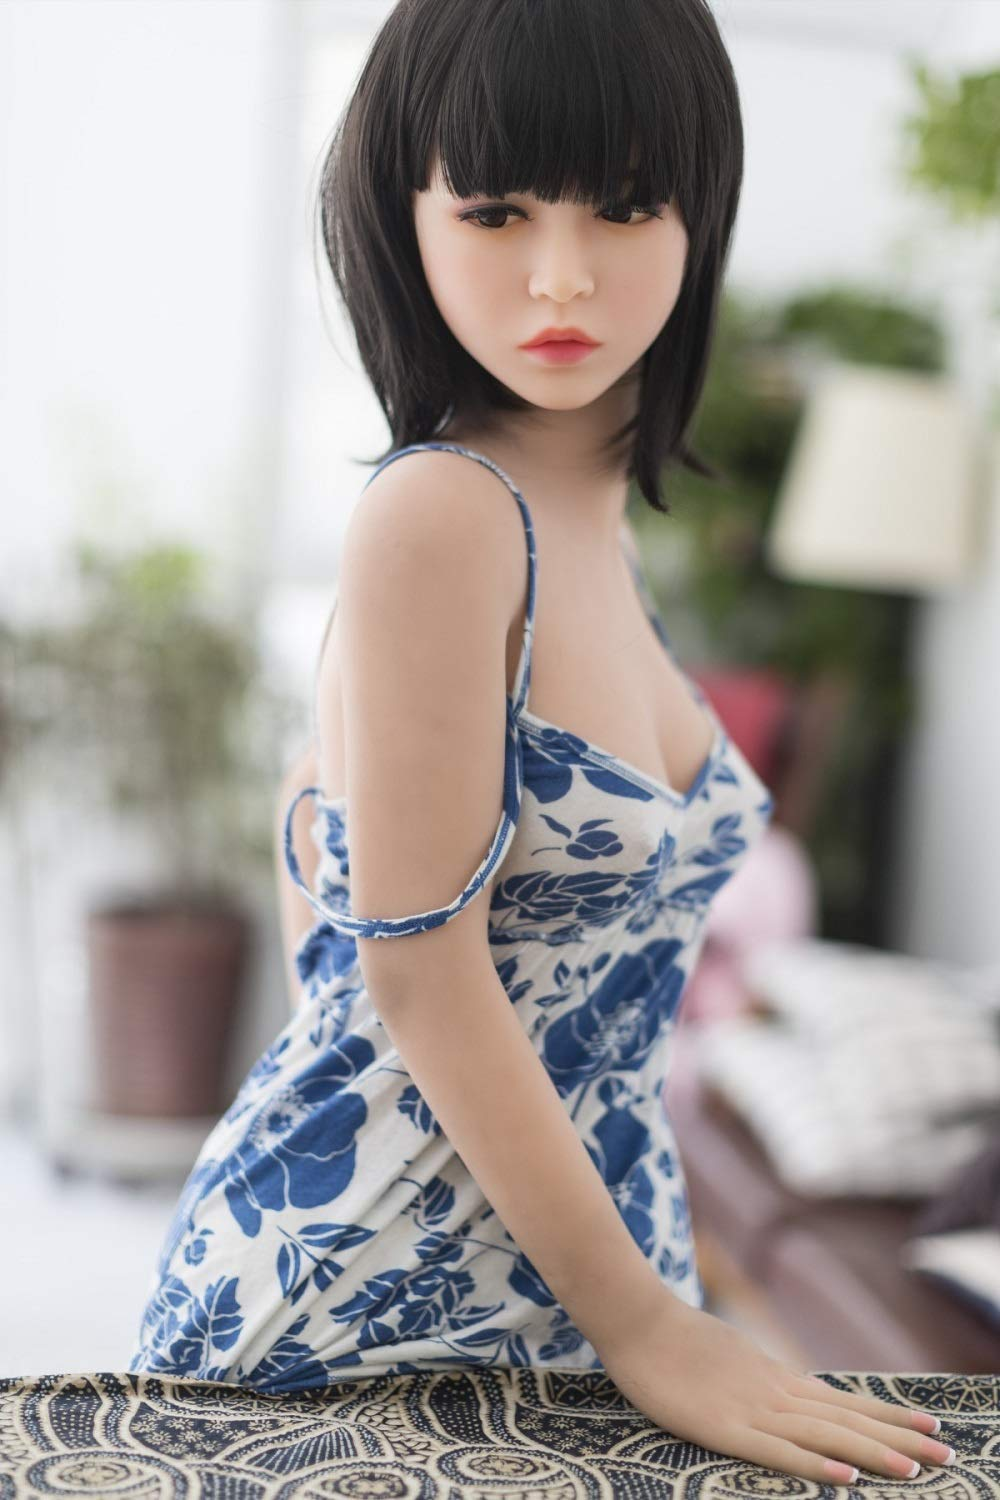 KingMansion 155 cm C-Cup Breast TPE Sex Love Doll Lifelike Sexy Real Love Toy - Daisy, Natural, 5ft